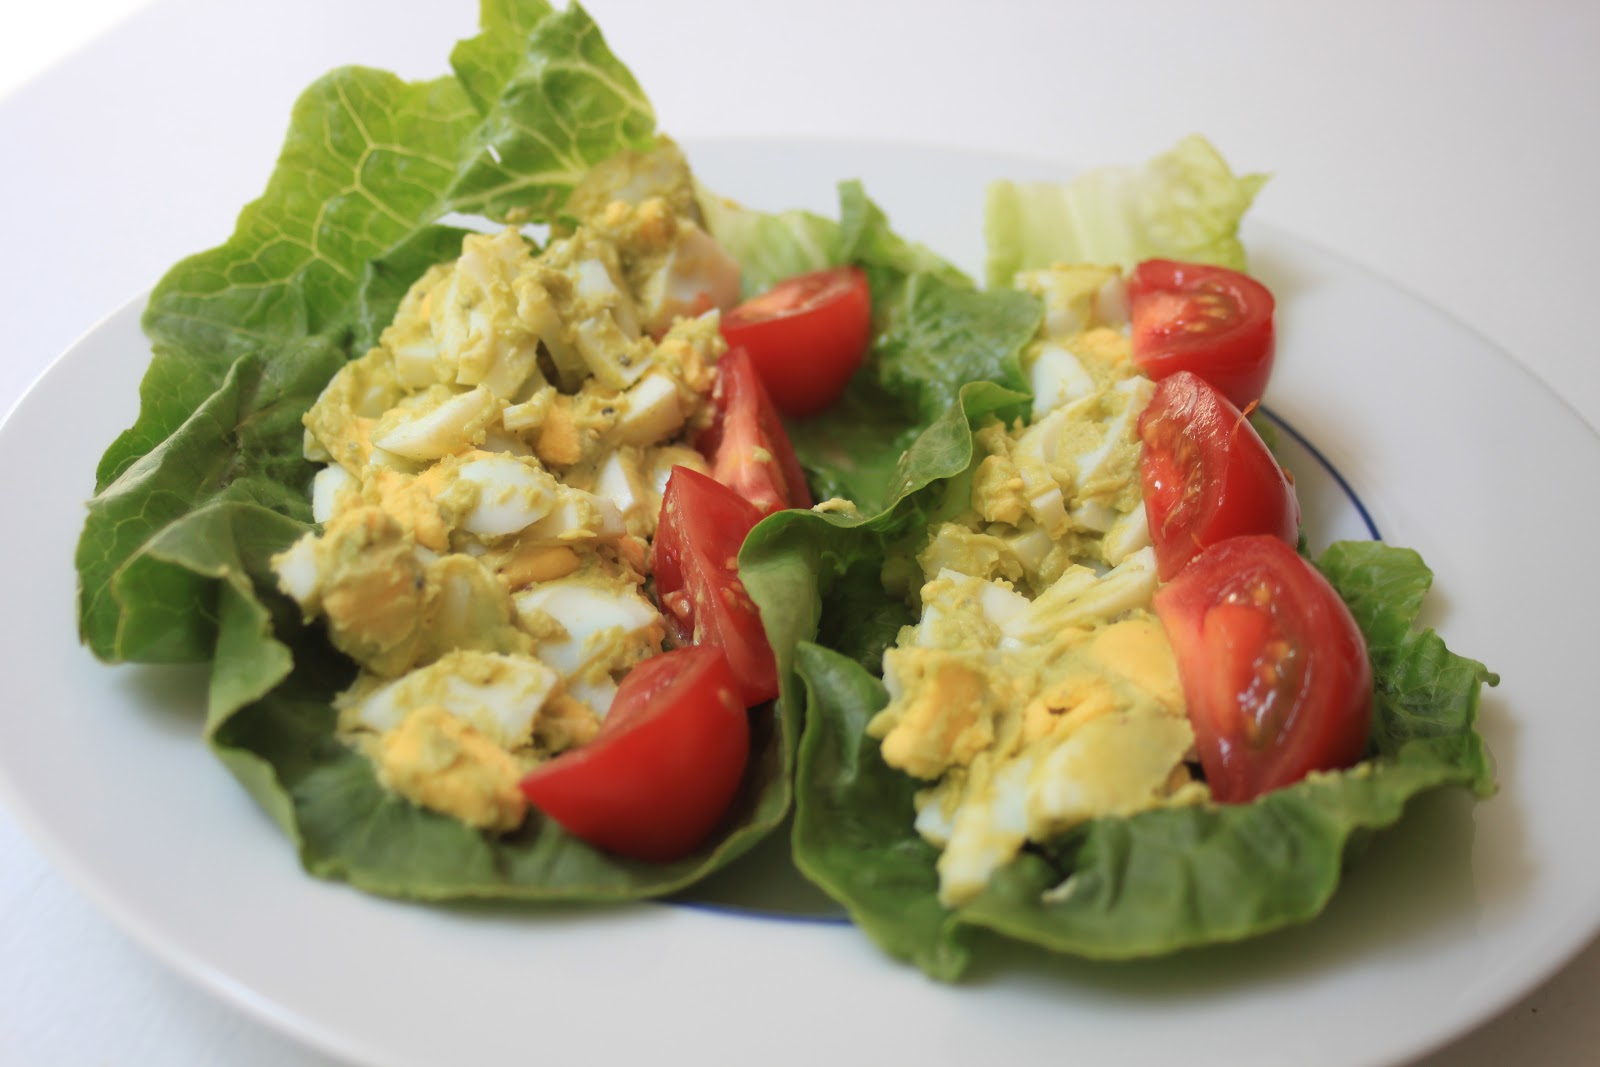 Good Clean Fun: Avocado Egg Salad